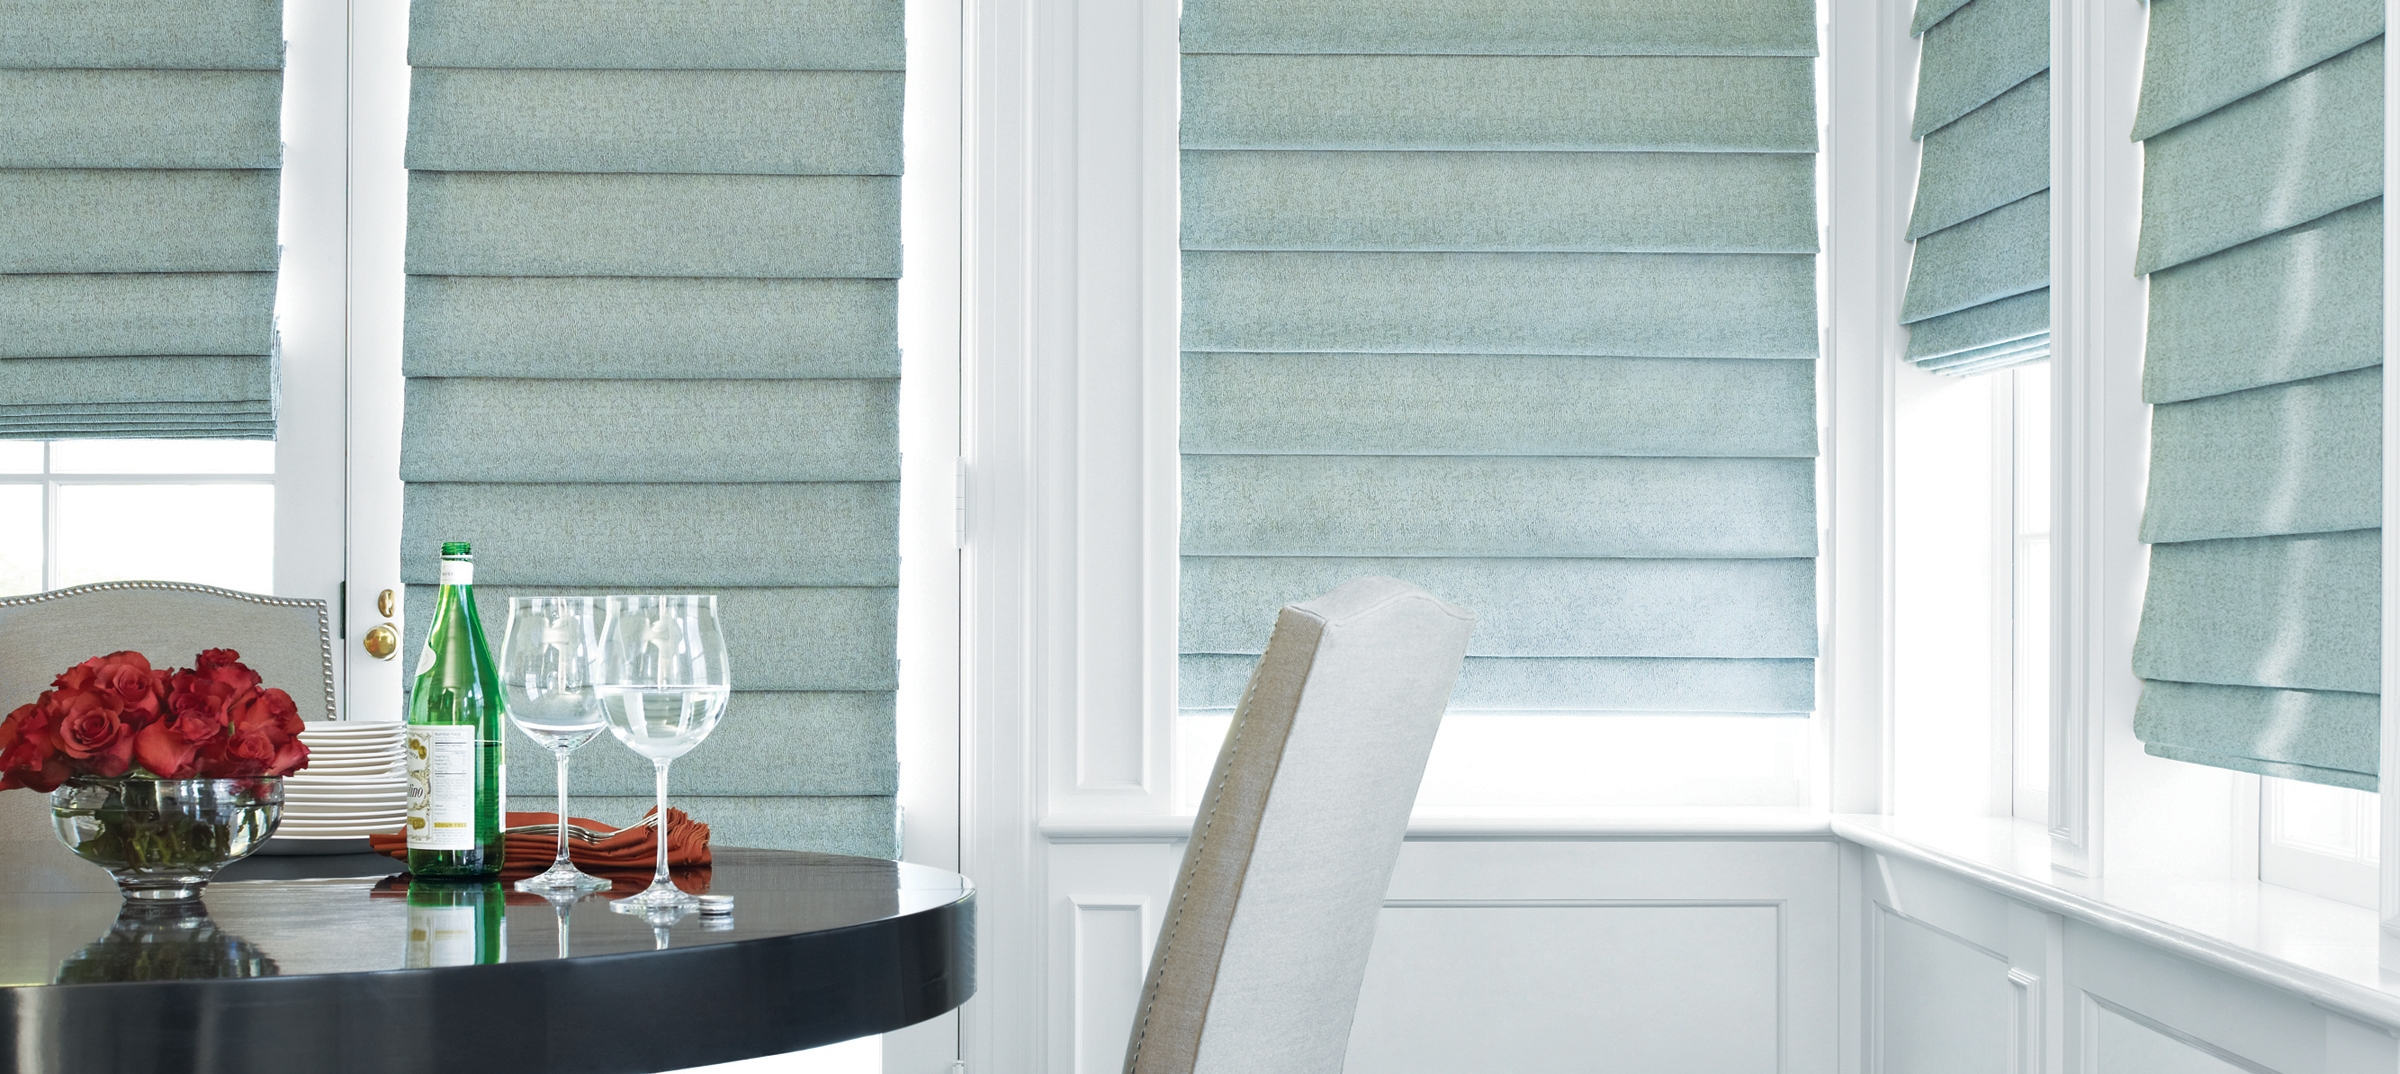 Roman Shades Design Studio Hunter Douglas Regarding Roman Fabric Blinds (Image 12 of 15)